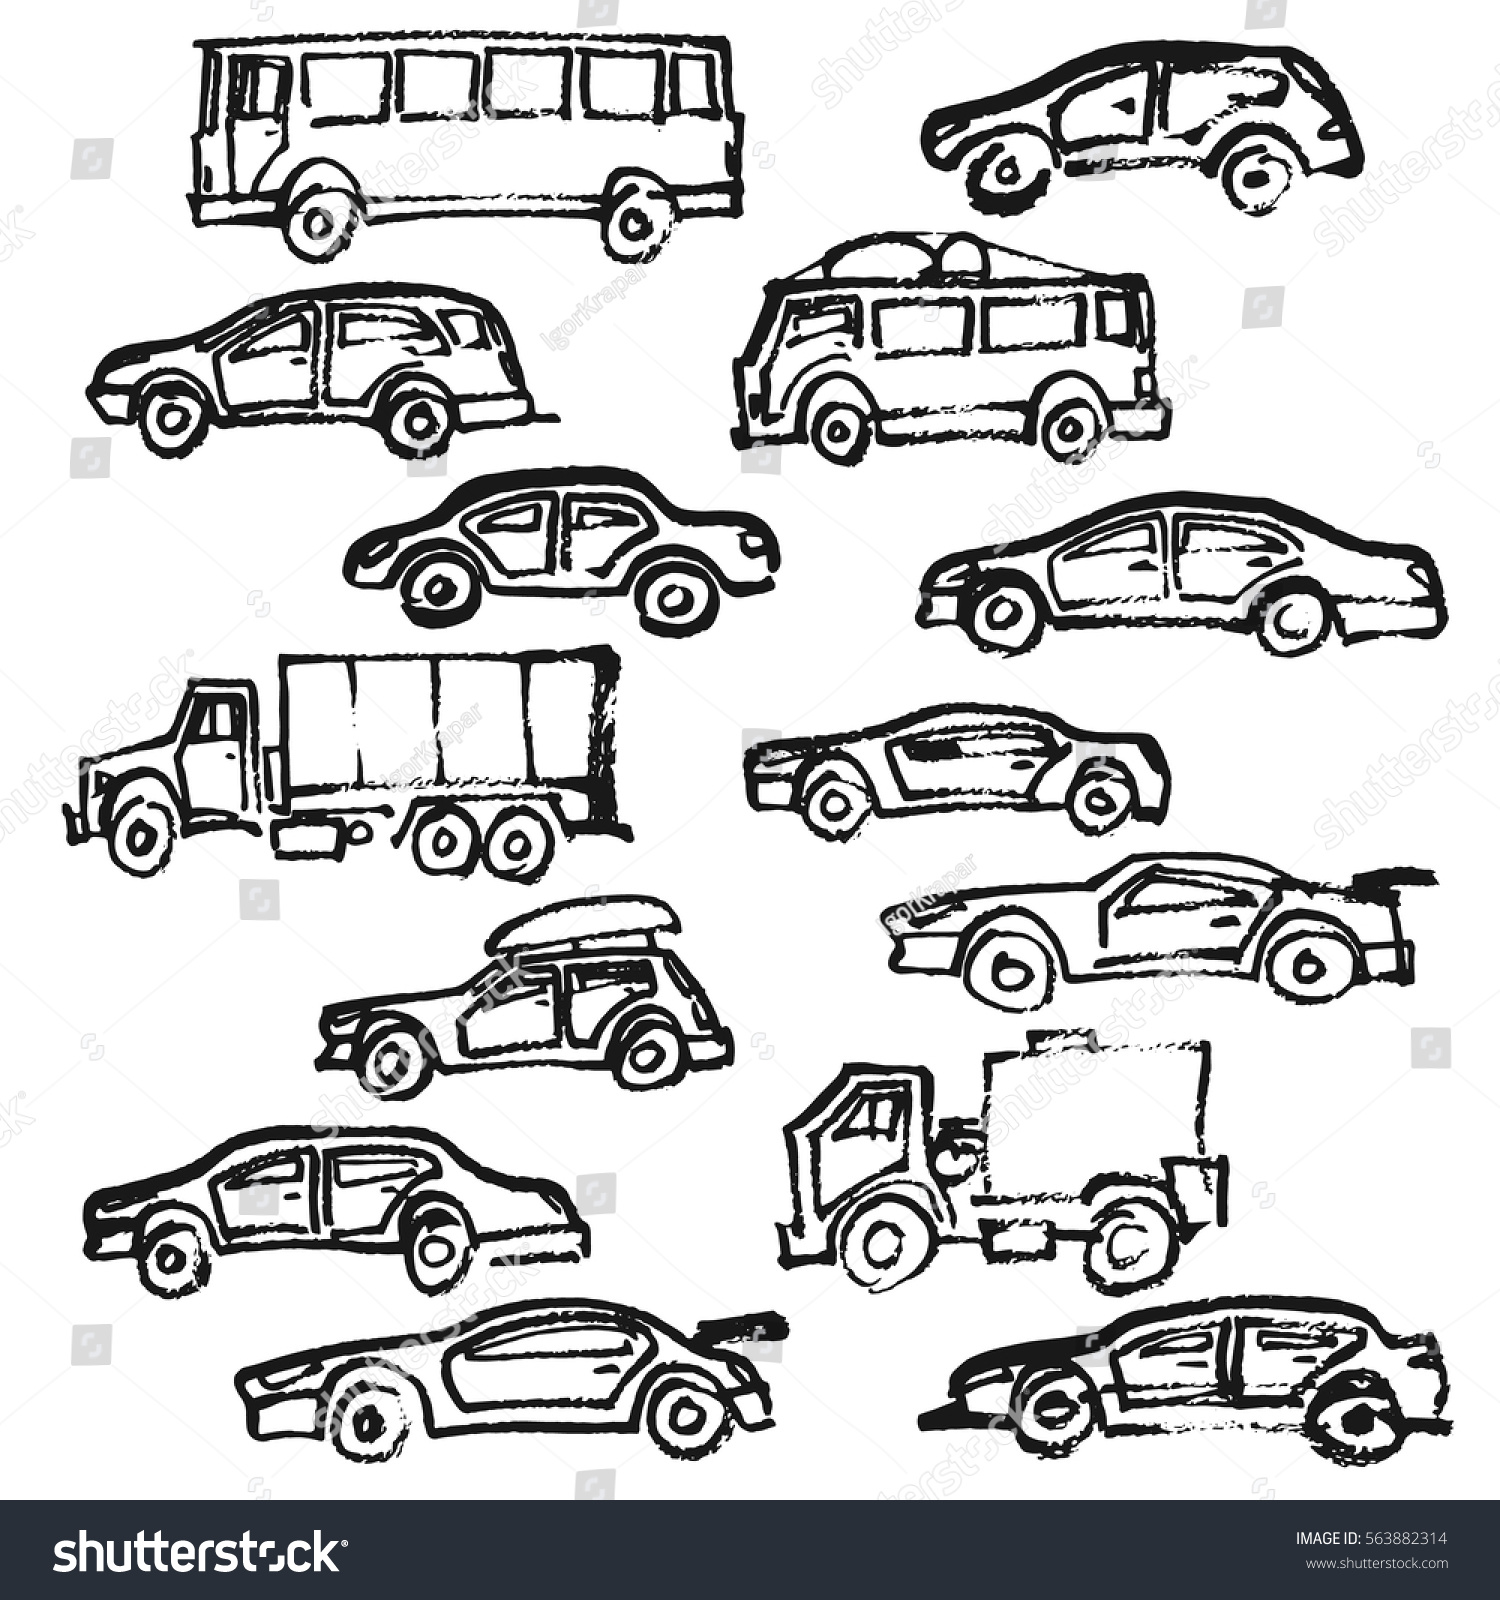 Cars Hand Drawing Set Vehicle Automobile Stock Vector 563882314 ...